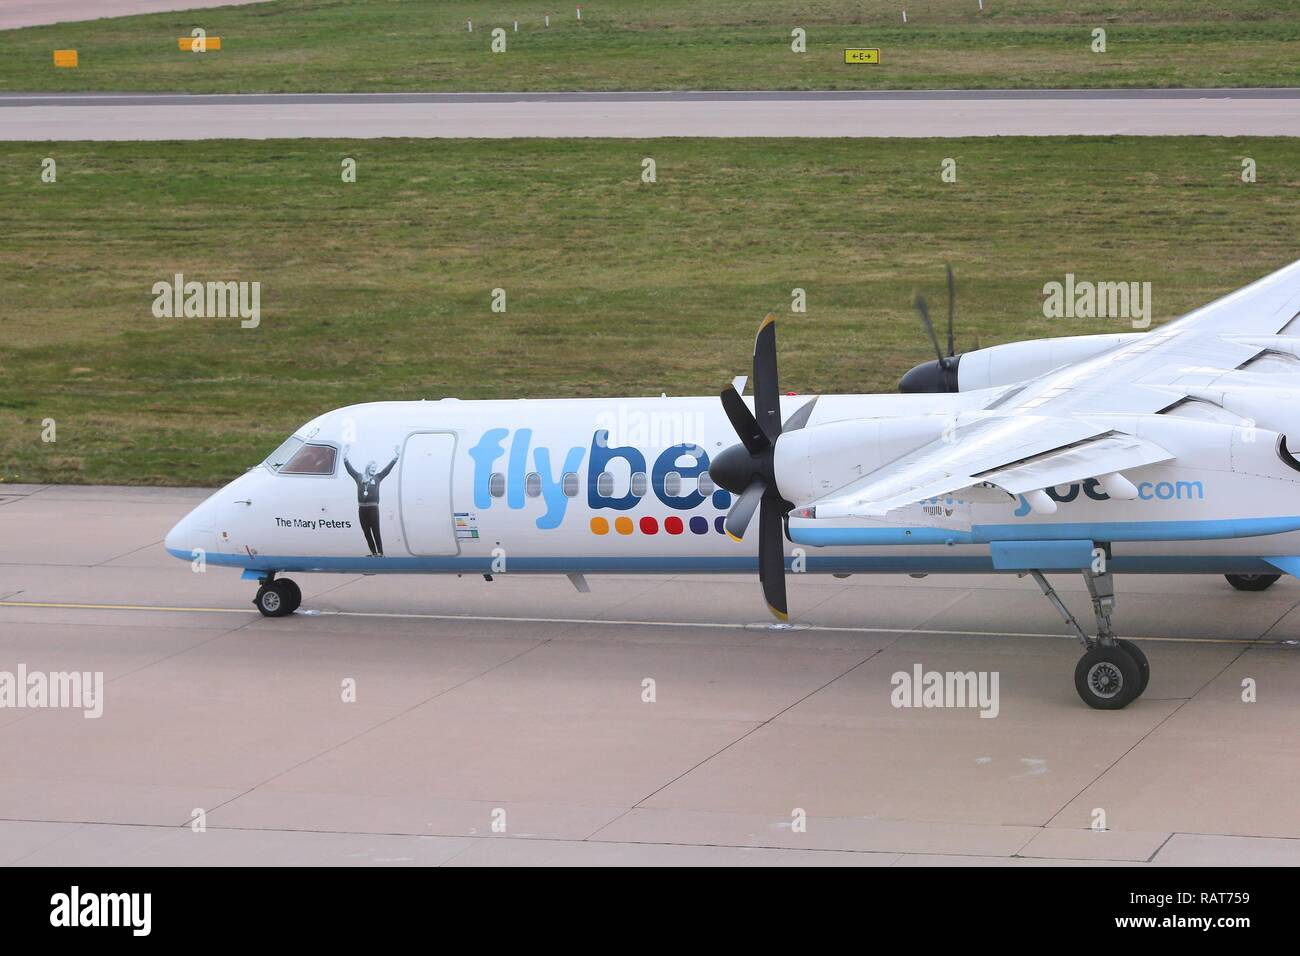 BIRMINGHAM, UK - APRIL 24, 2013: Pilots taxi Flybe Bombardier Dash 8 Q-400 at Birmingham Airport, UK. Flybe carried 7.6 million passengers in 2013. - Stock Image